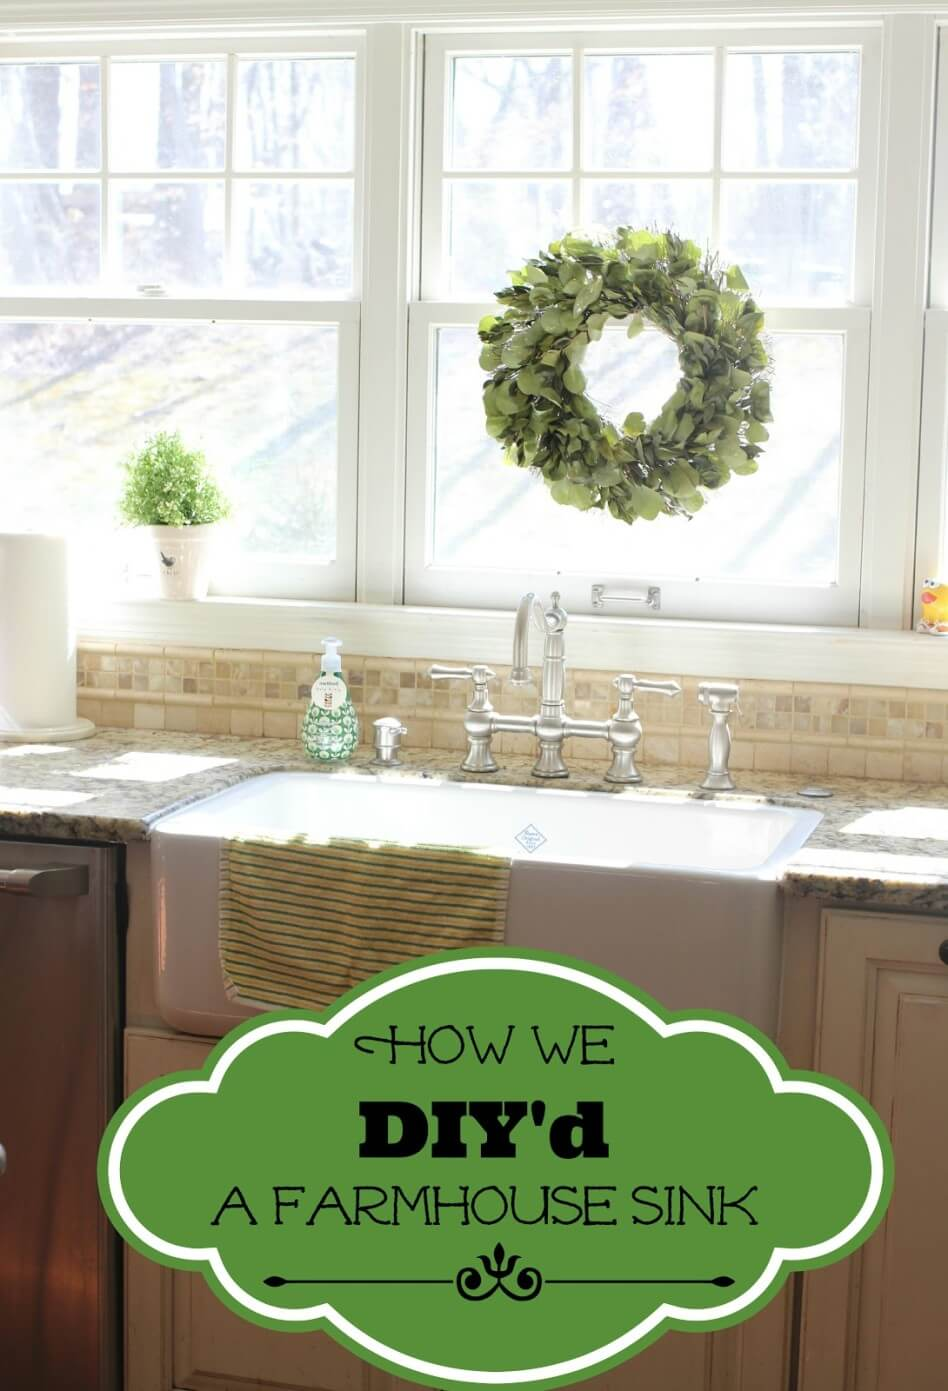 Farmhouse Sink Project for Your Kitchen